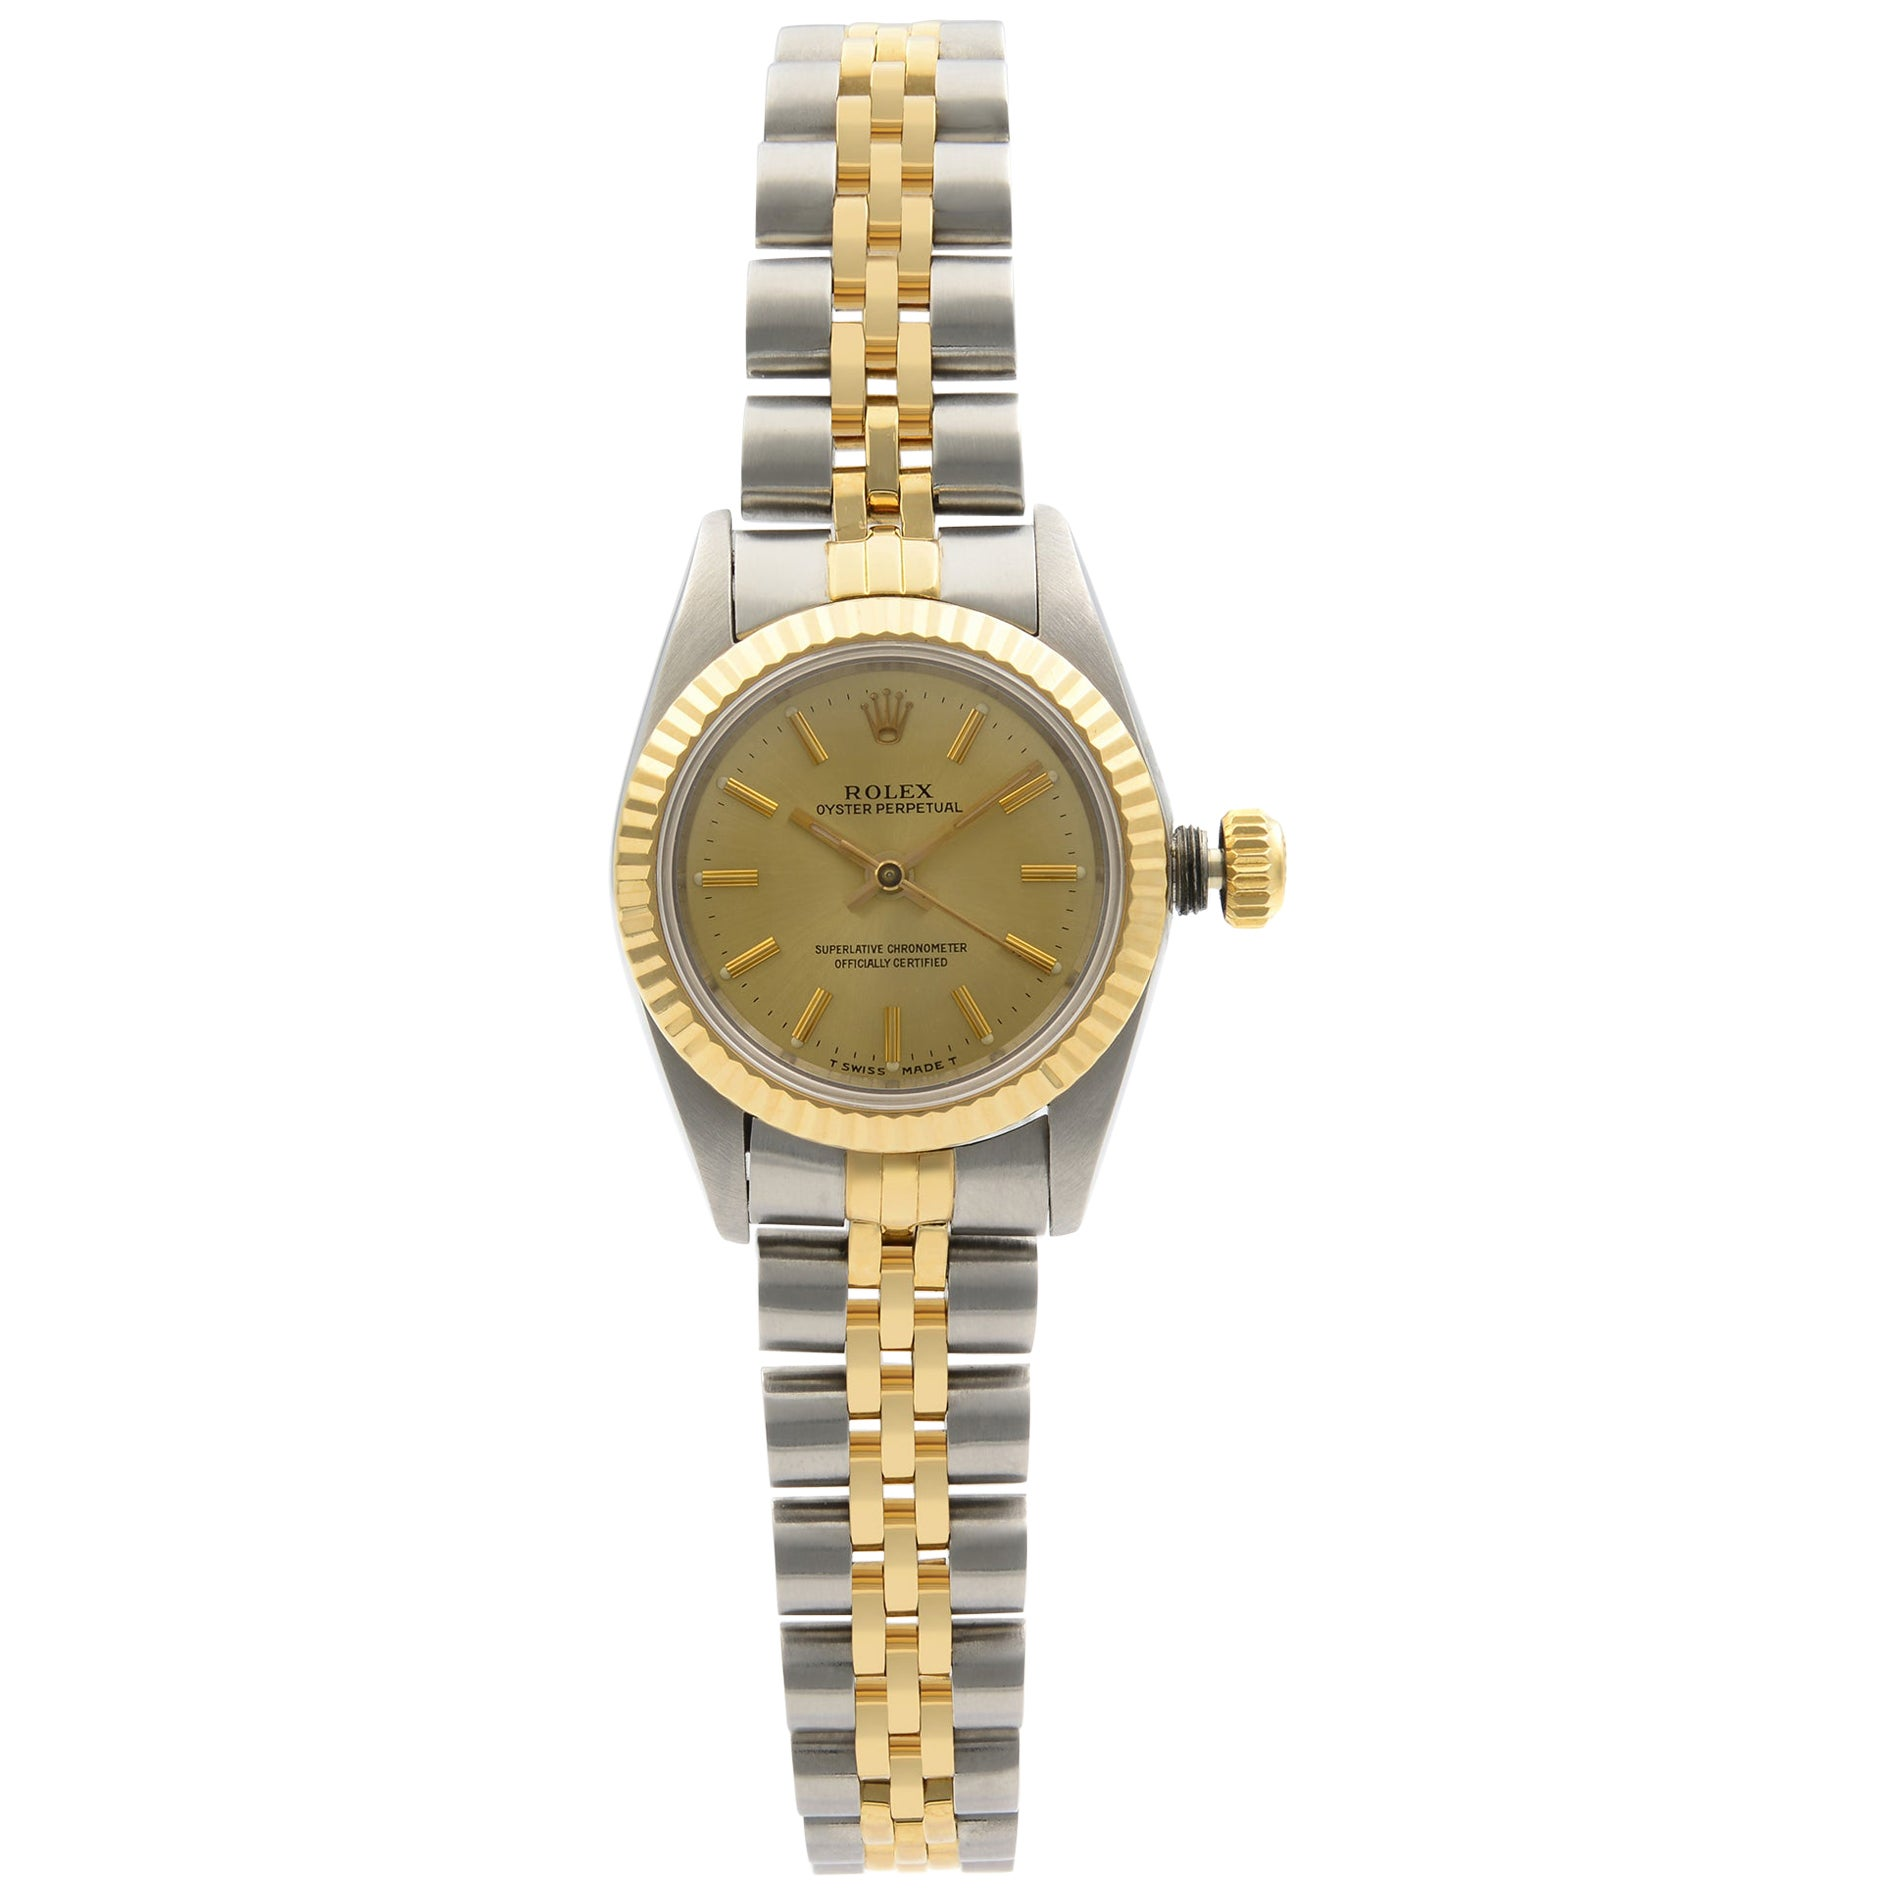 Rolex Oyster Perpetual 18k Yellow Gold Steel Champagne Dial Ladies Watch 67193